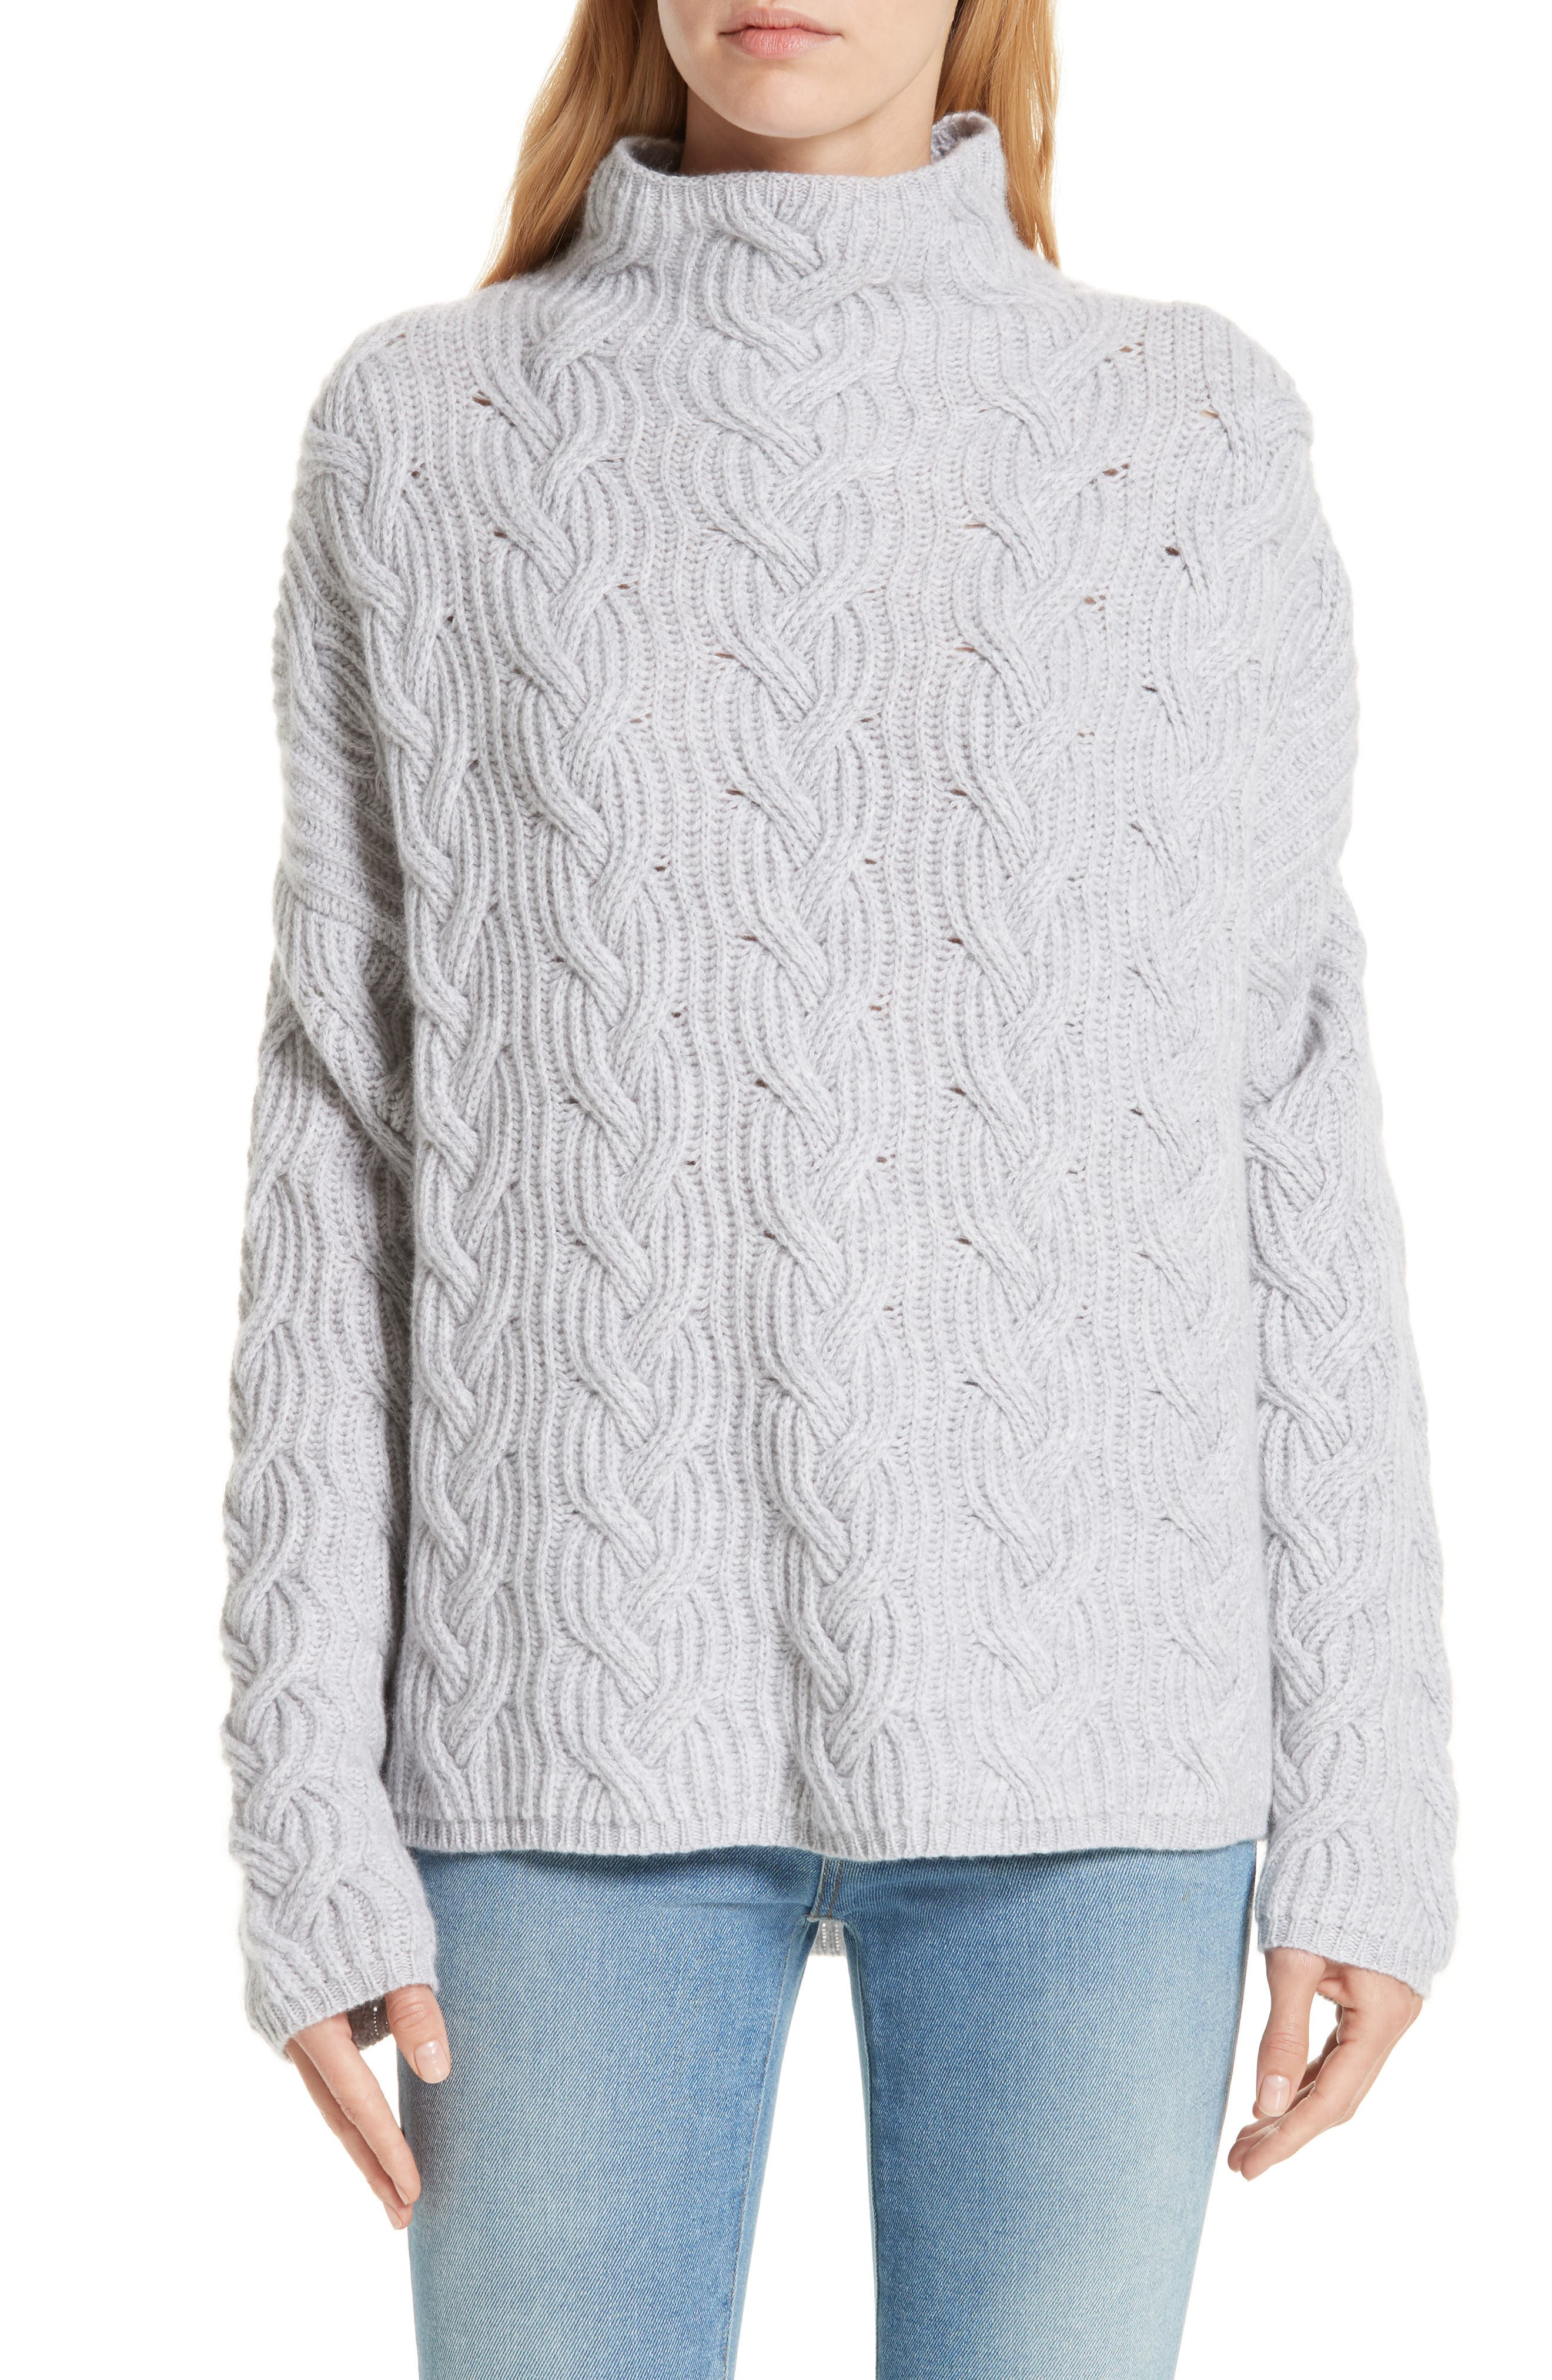 Cable Cashmere Knit Sweater, Main, color, 050